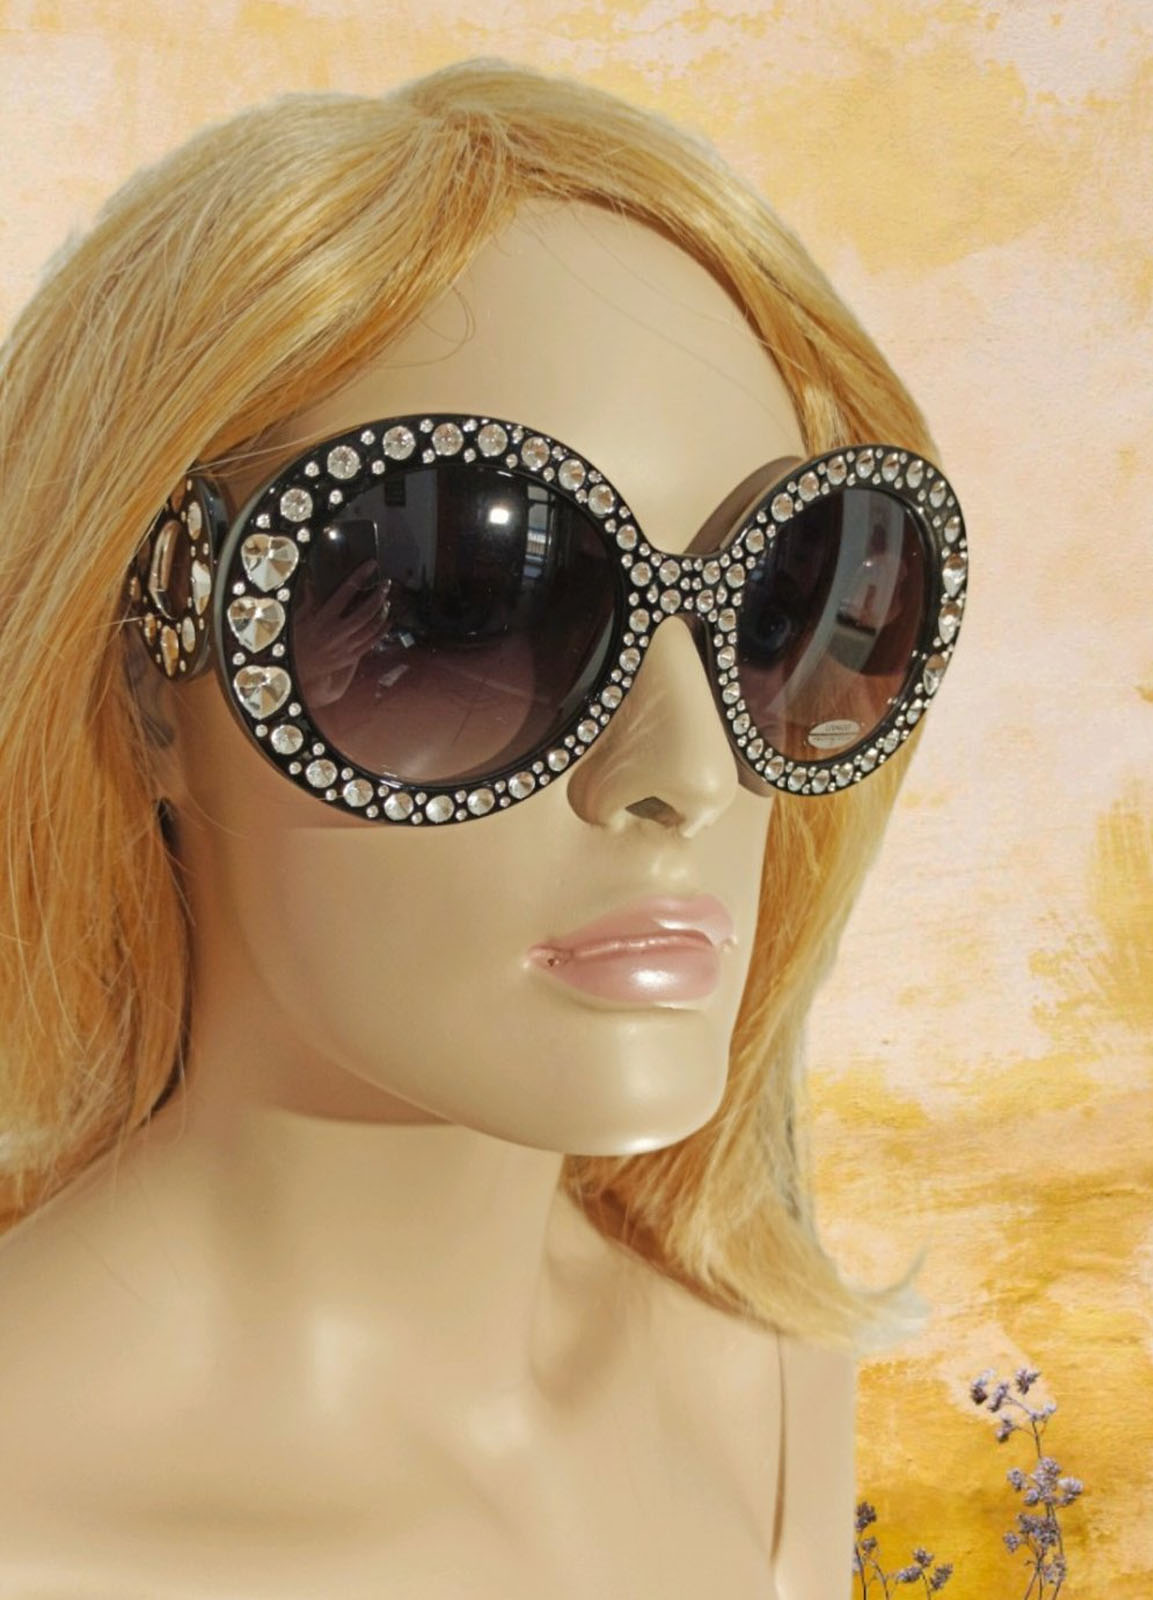 Sun Glass Woman